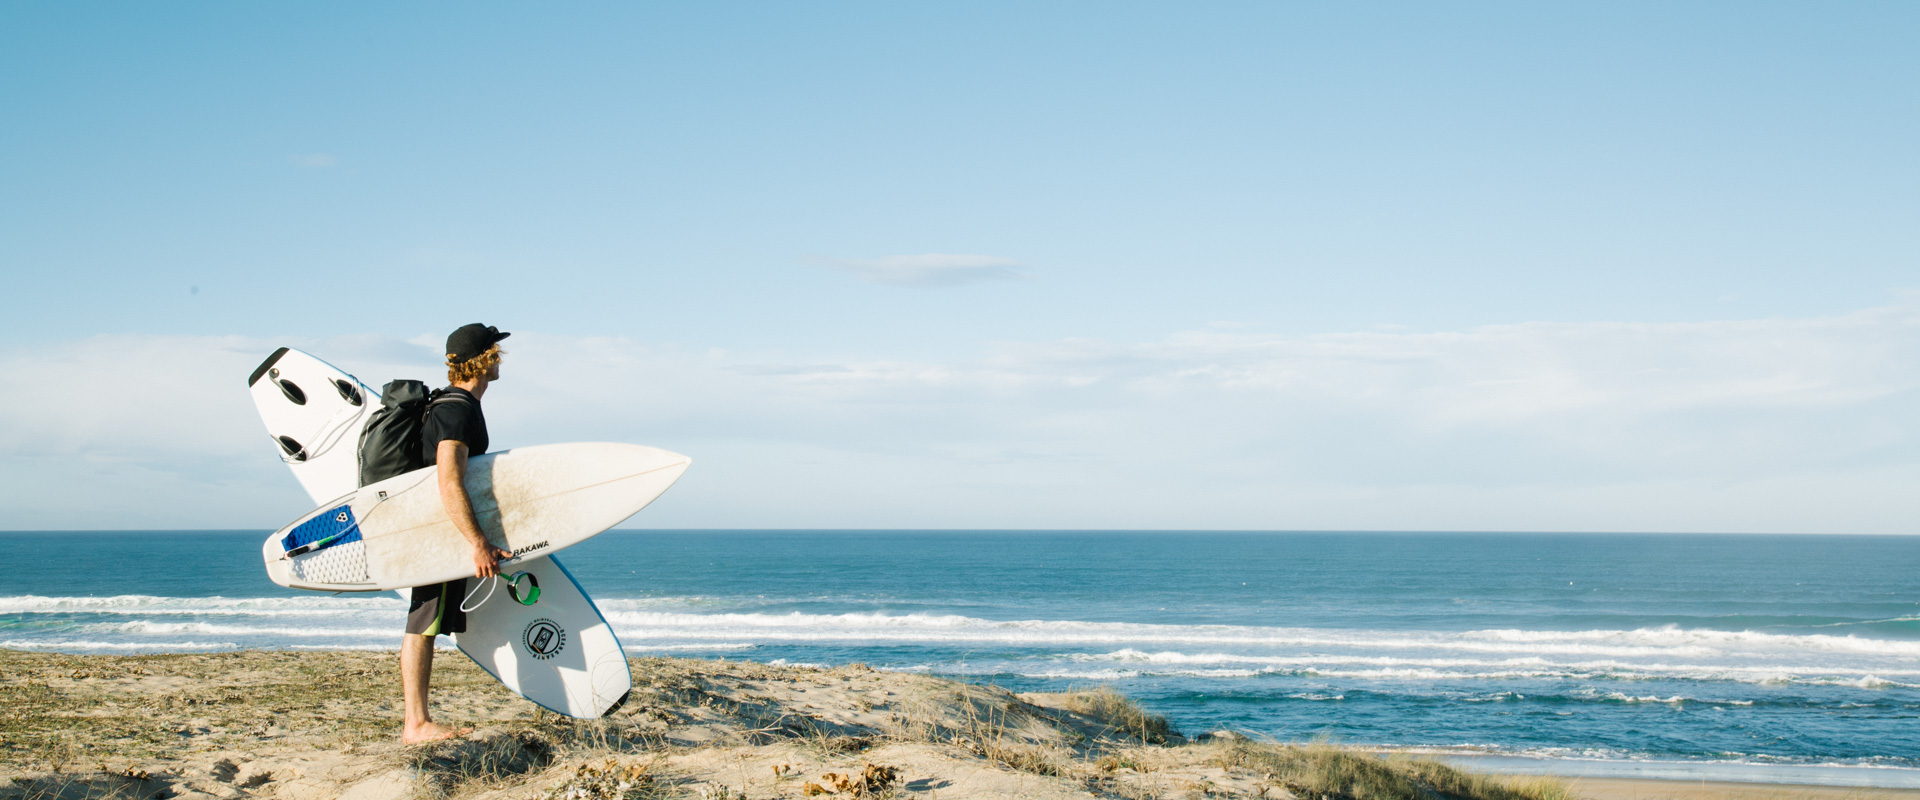 Surf Guides Hossegor - Raphael Tutenuit with his surfboards on the Hossegor beach